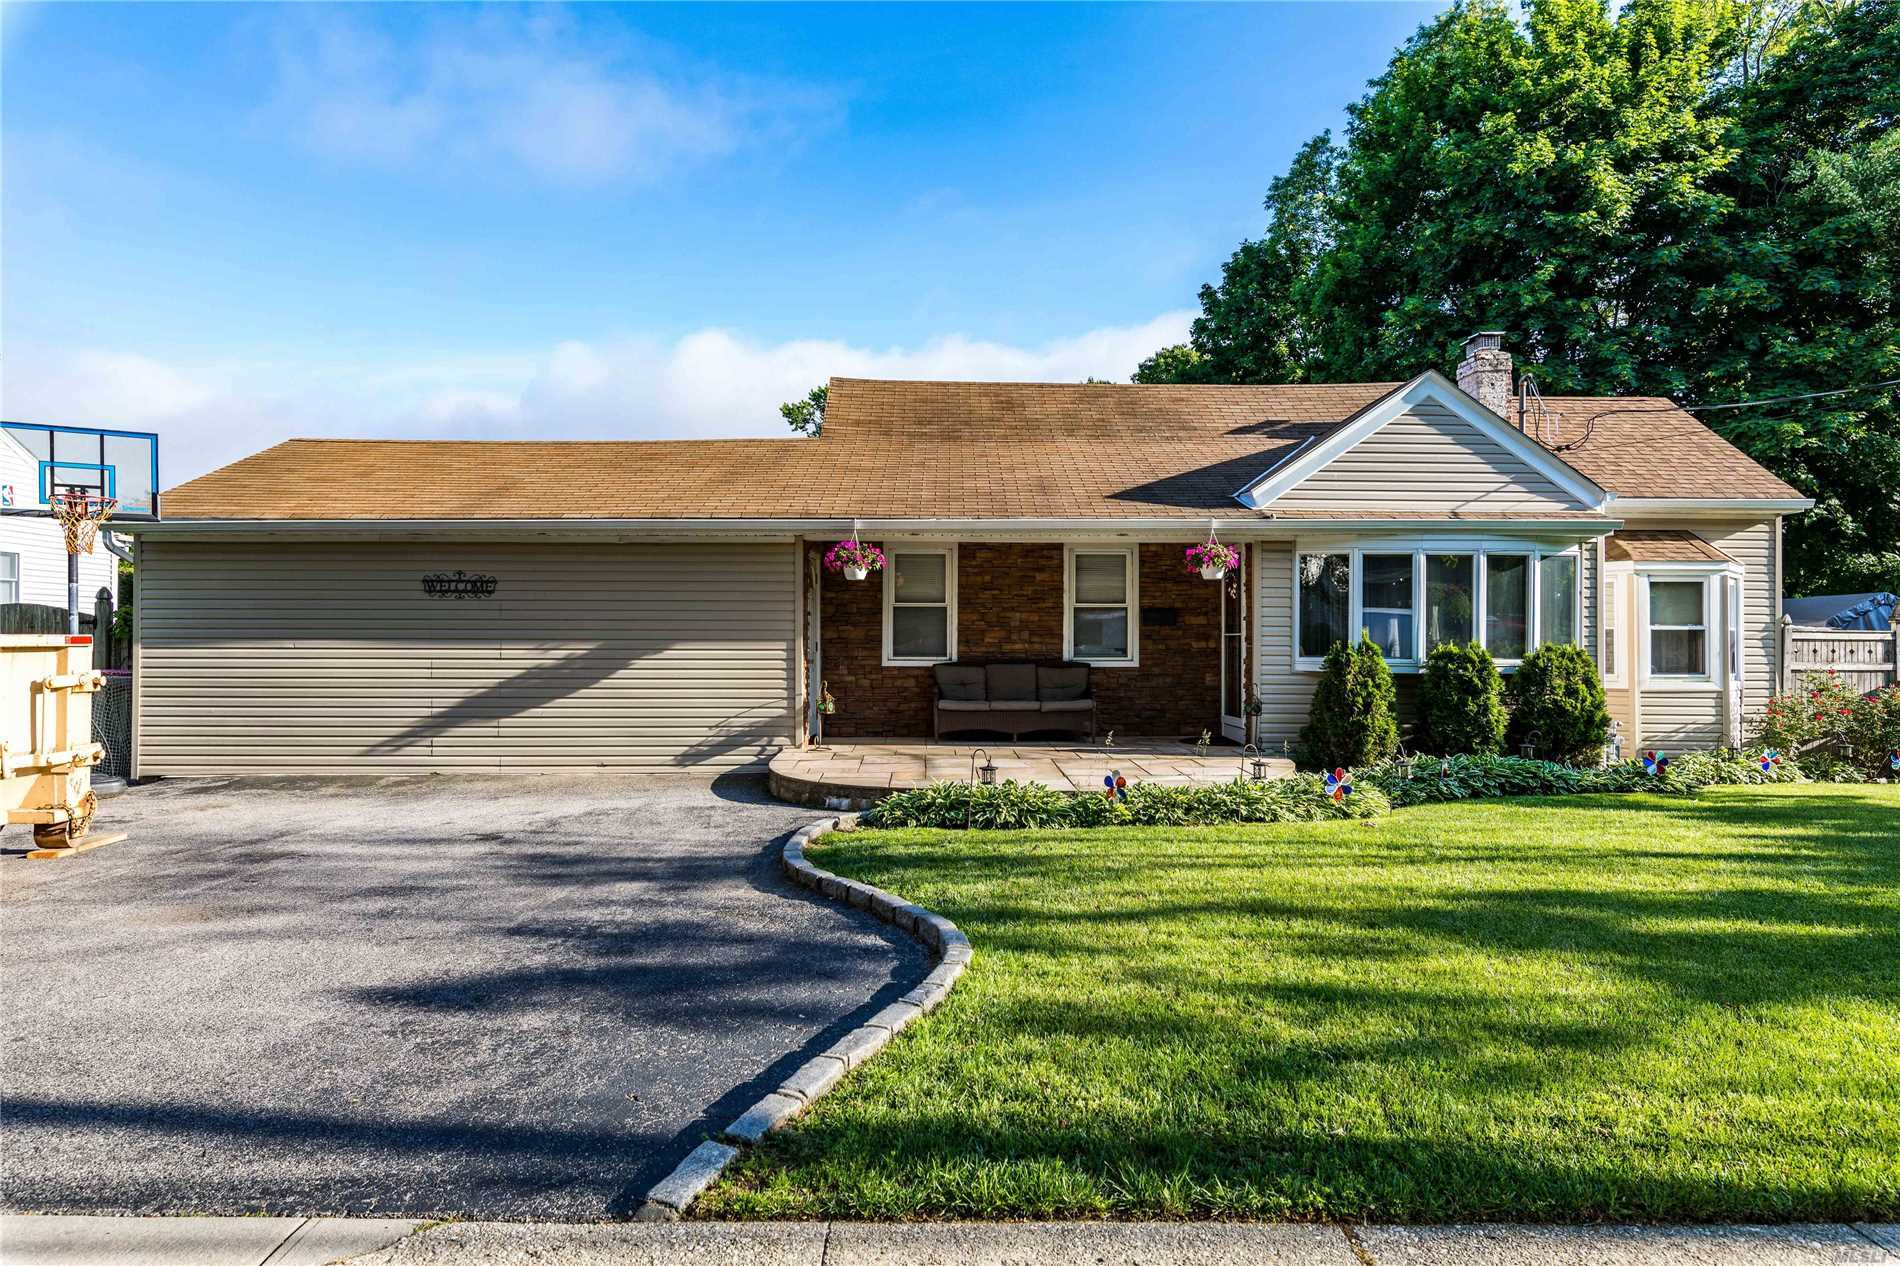 A One Of A Kind Expanded Ranch In The Heart Of Wantagh. 80 X 125 Property. Enter Through The Front Sitting Room W/ Wood Burning Fp, Into An Updated Kitchen, & Large Dining Room. Truly An Entertainers Delight With A Huge 3 Season Room W/ Skylights, Outdoor Patio And Pool, That Is Being Offered As A Gift With The Home! Very Large Master Bedroom. Wood (Pergo Style) Floors. 200 Amp Elec. Central A/C. Don't Miss Out, Wantagh Woods Is Waiting For You!